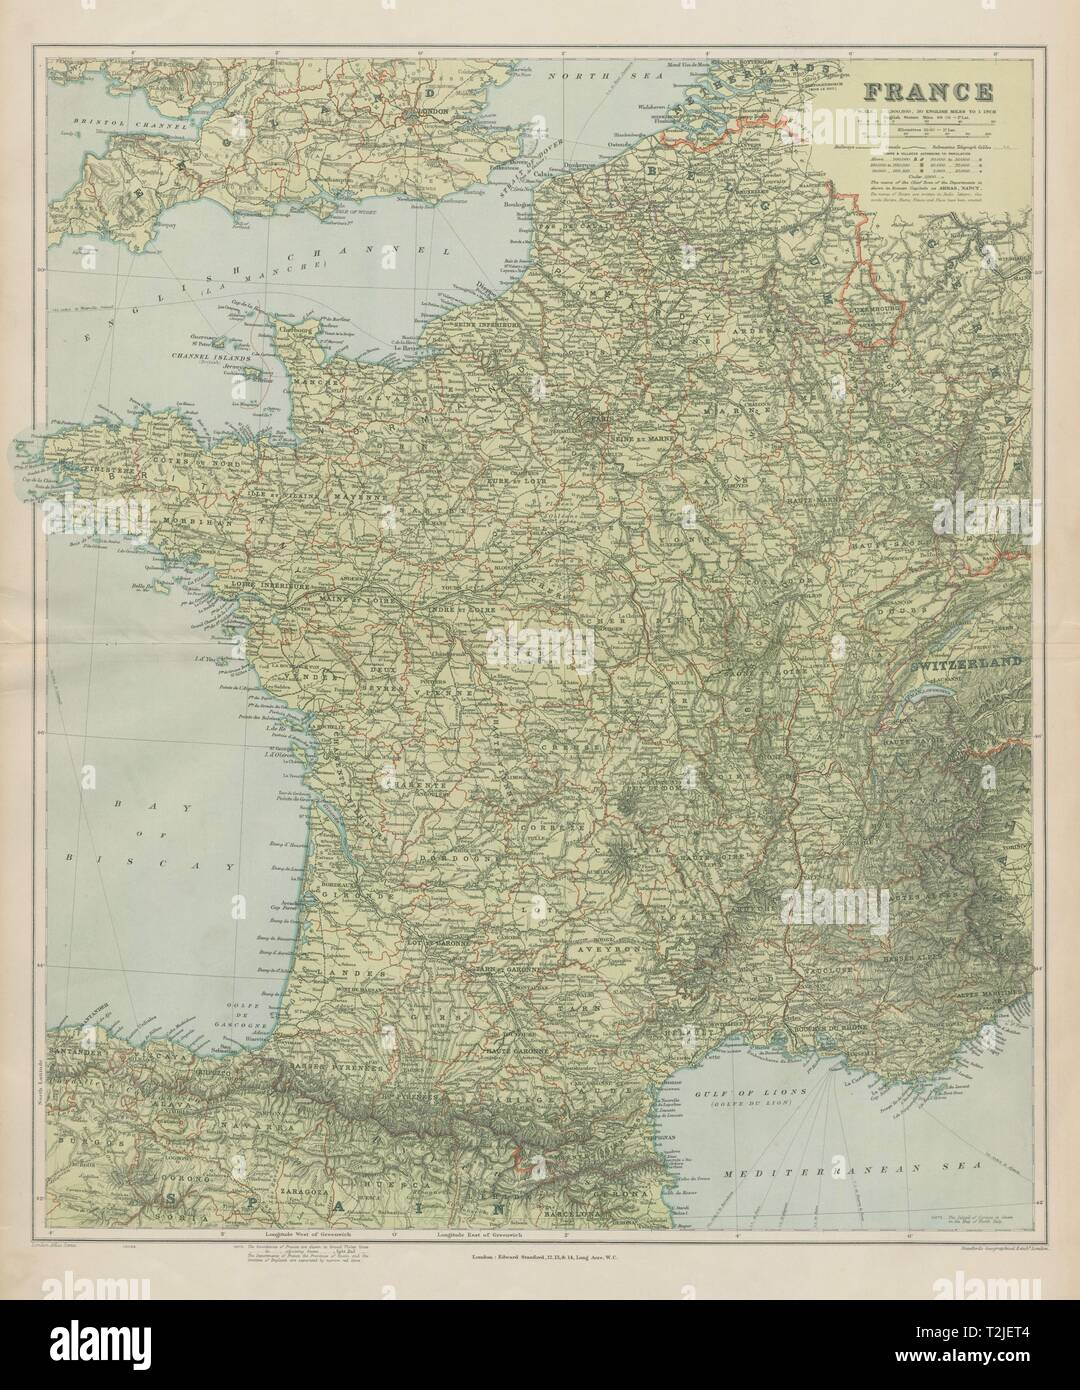 France physical. Mountains & rivers. Large 66x55cm. STANFORD ...